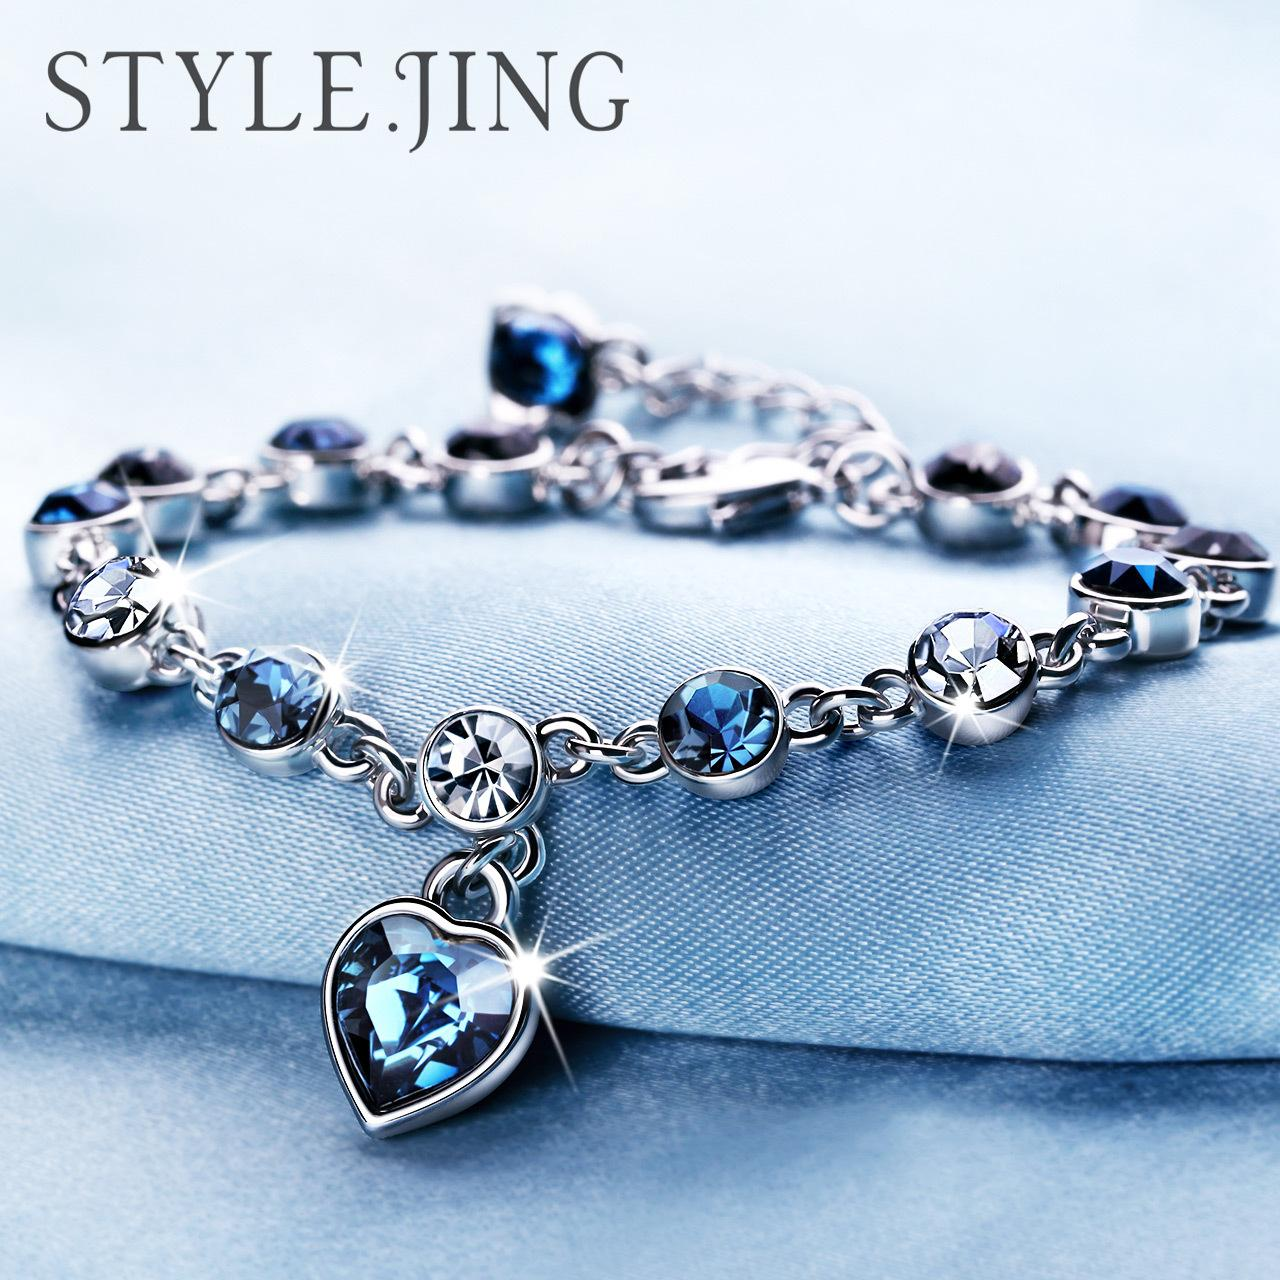 2019 Austrian Crystal Full Diamond Bracelet Silver Plated Birthstone Crystal  Jewelry Optional Multicolor Crystal Bracelet Maxi Statemet From Elena12 92a9fabaac